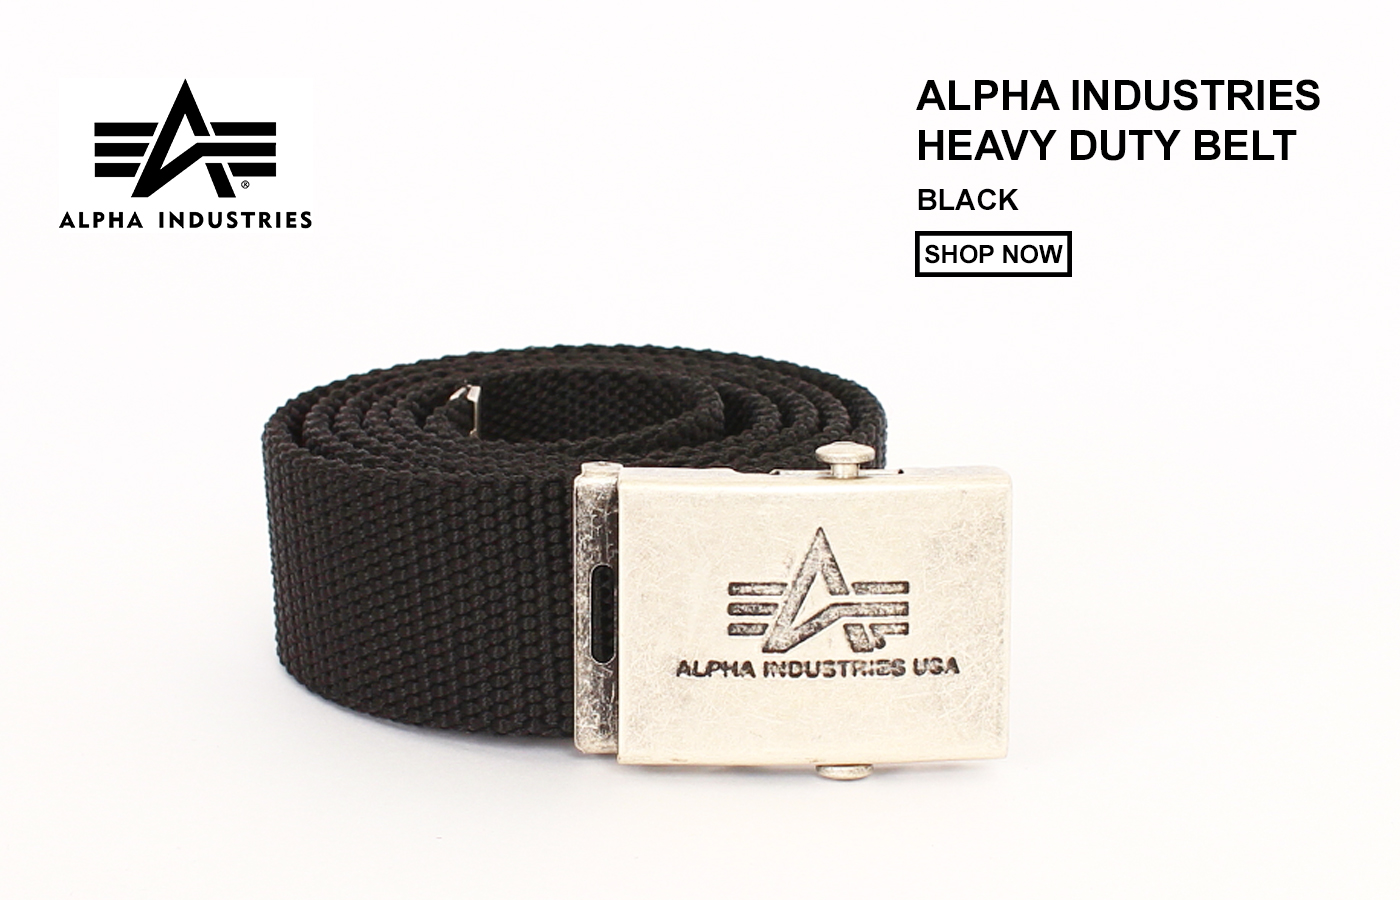 Alpha Industries Heavy Duty Belt